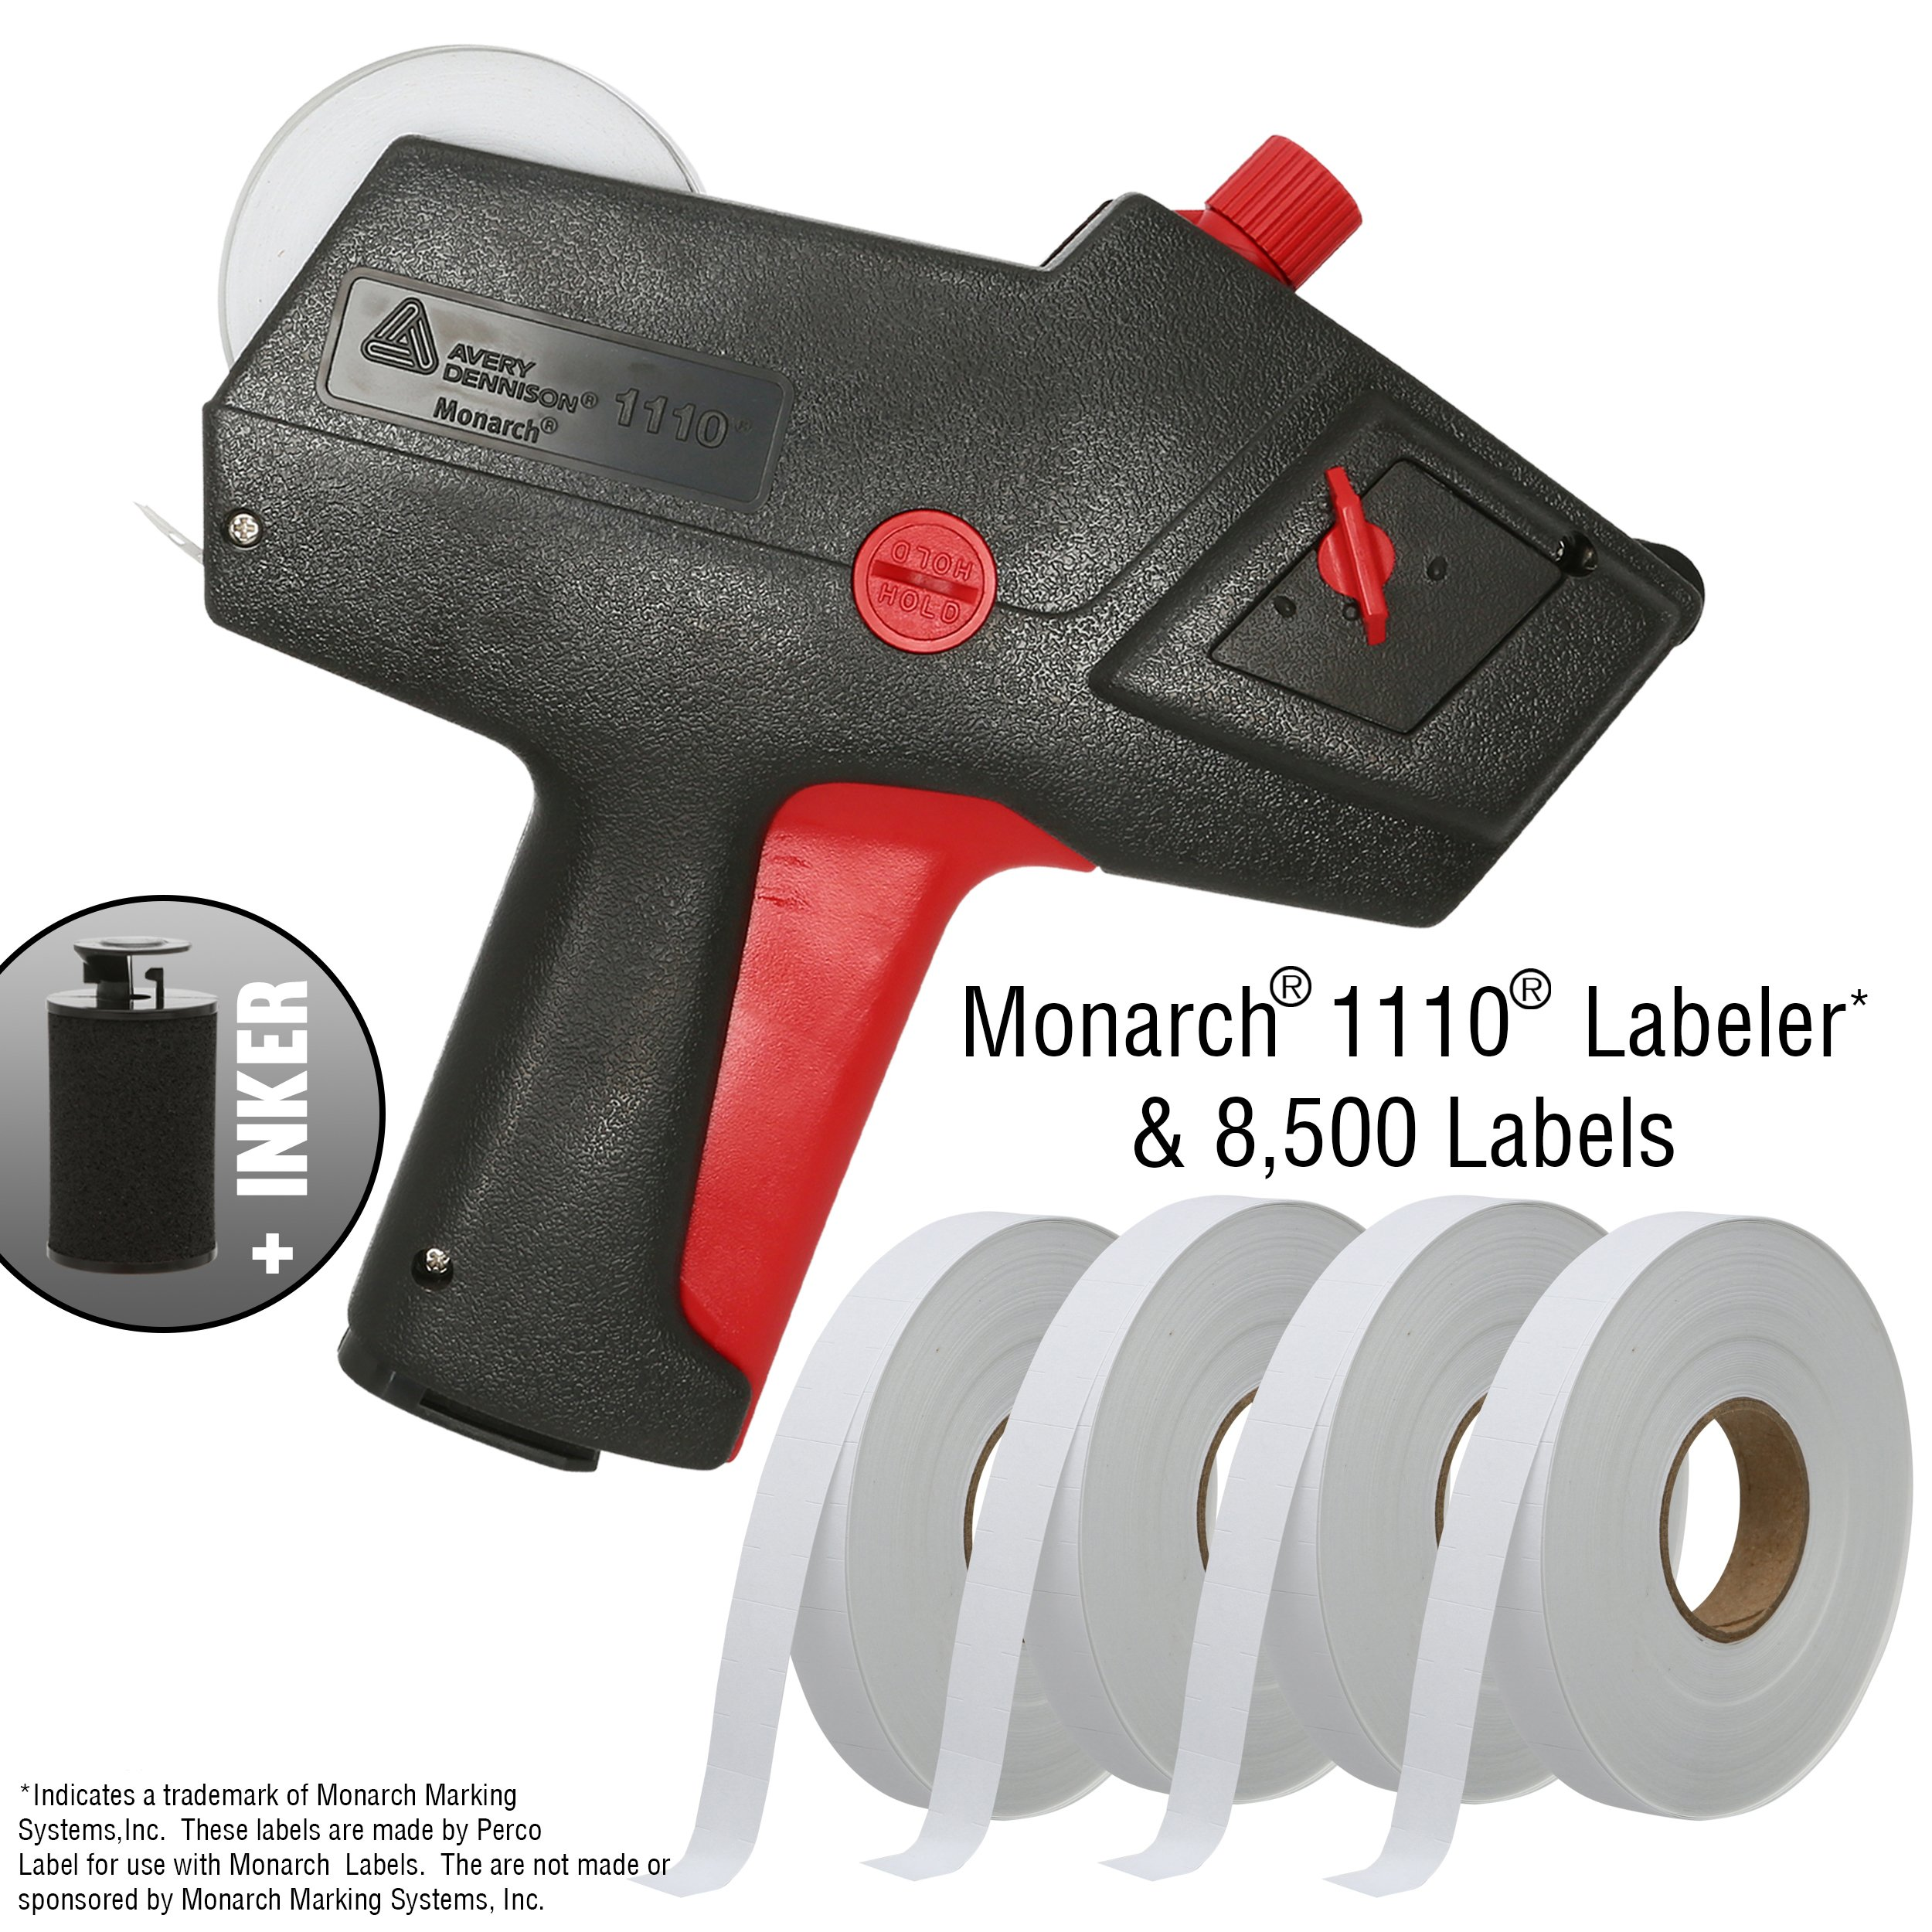 Monarch 1110 Price Gun with Labels Starter Kit: Includes Price Gun, 8,500 White Pricing Labels and Preloaded Inker